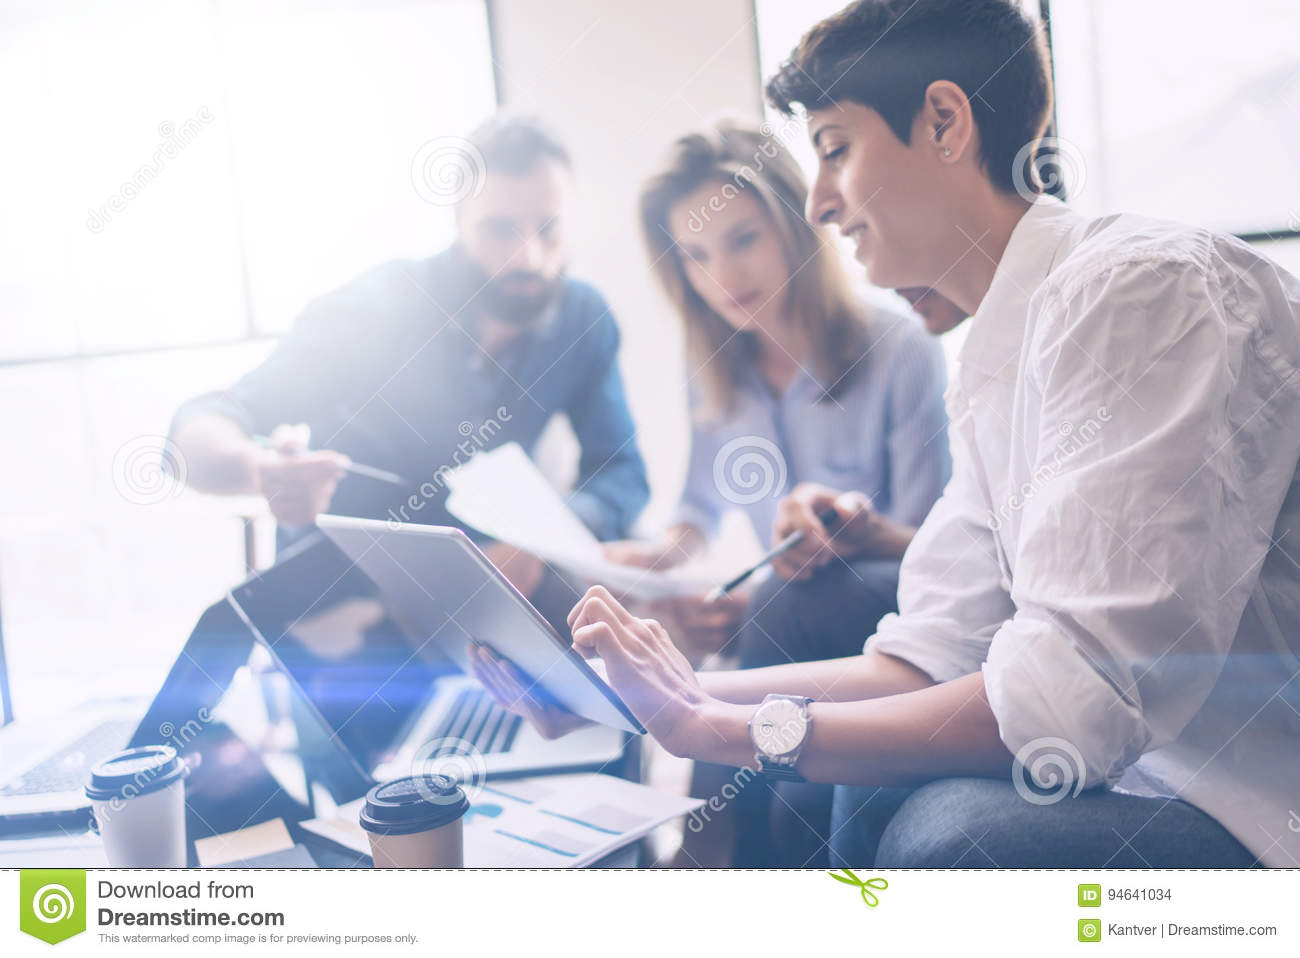 Business partners meeting concept.Coworkers team working new startup project at modern office.Analyze business documents